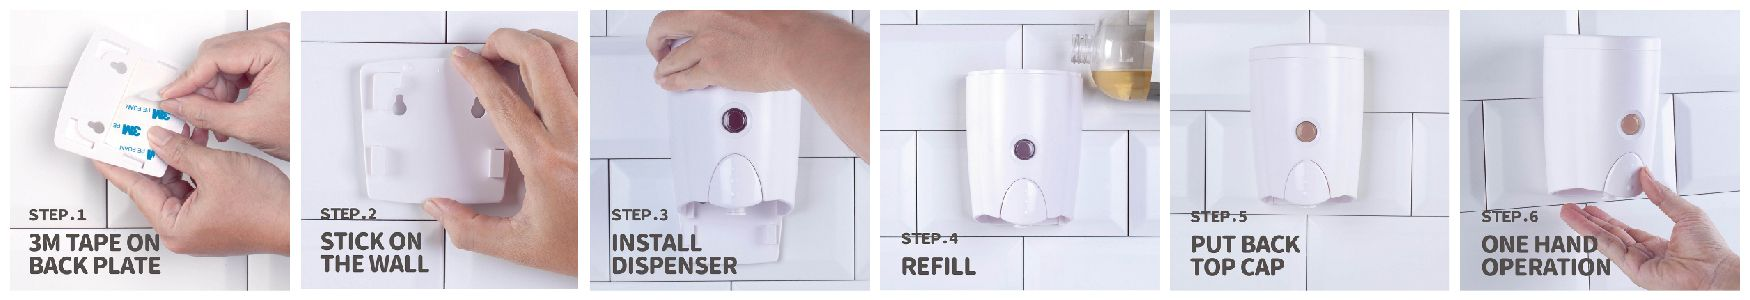 Quick Install Dispenser & Ready To Use